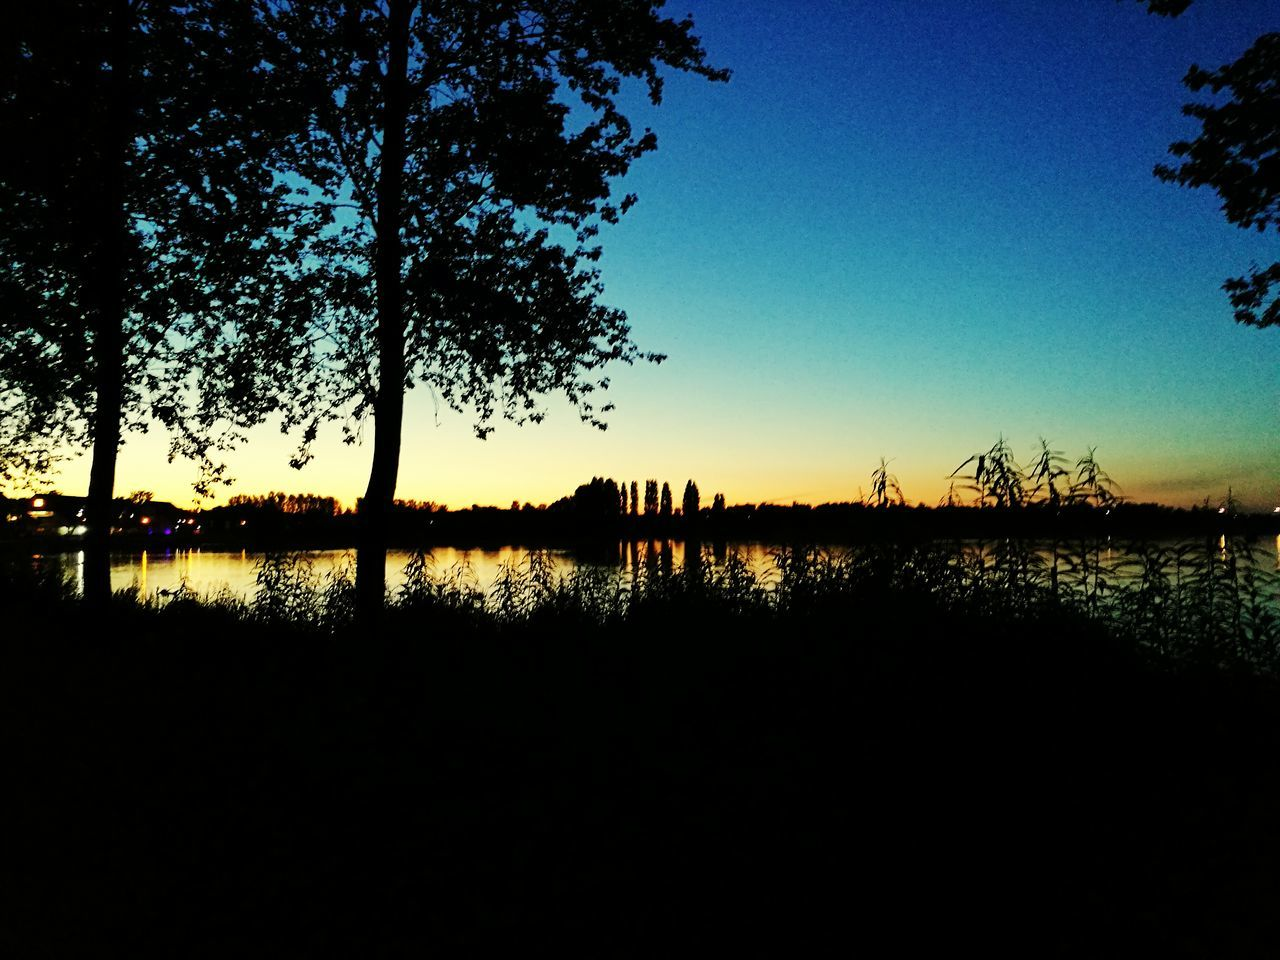 water, reflection, silhouette, tree, lake, sunset, nature, tranquil scene, no people, lakeshore, sky, outdoors, beauty in nature, tranquility, clear sky, scenics, growth, day